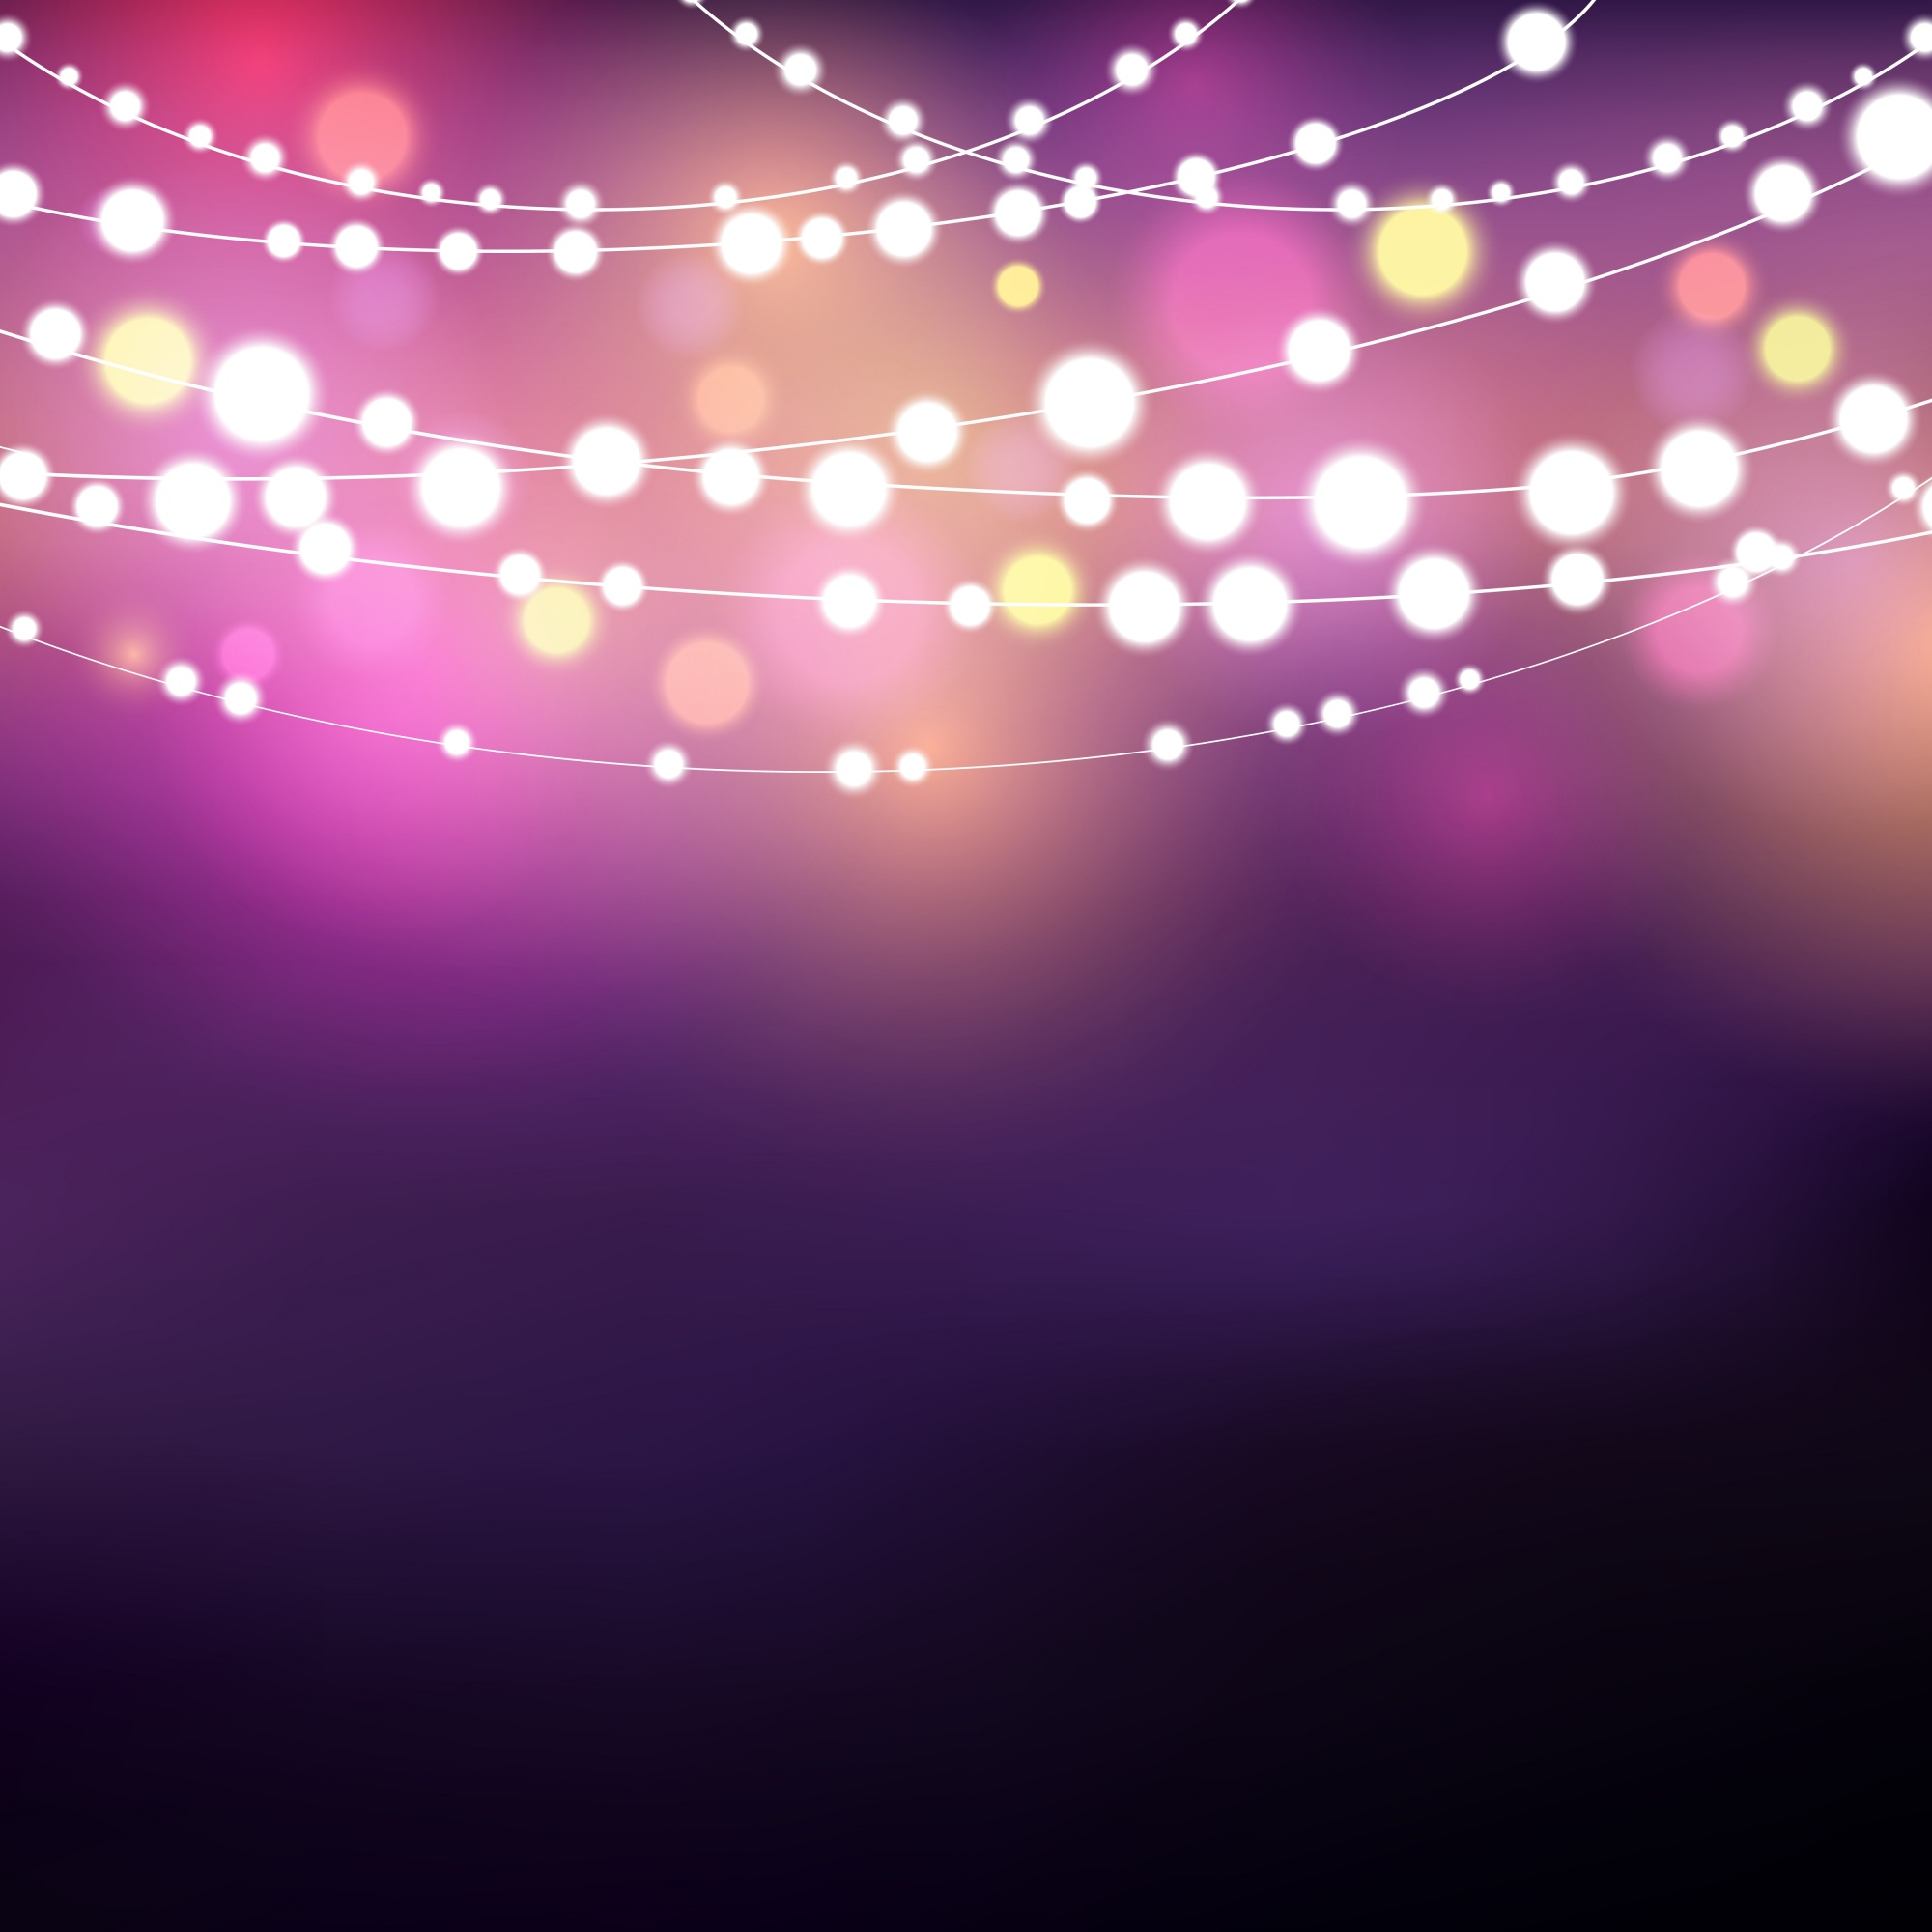 Decorative background with glowing string lights